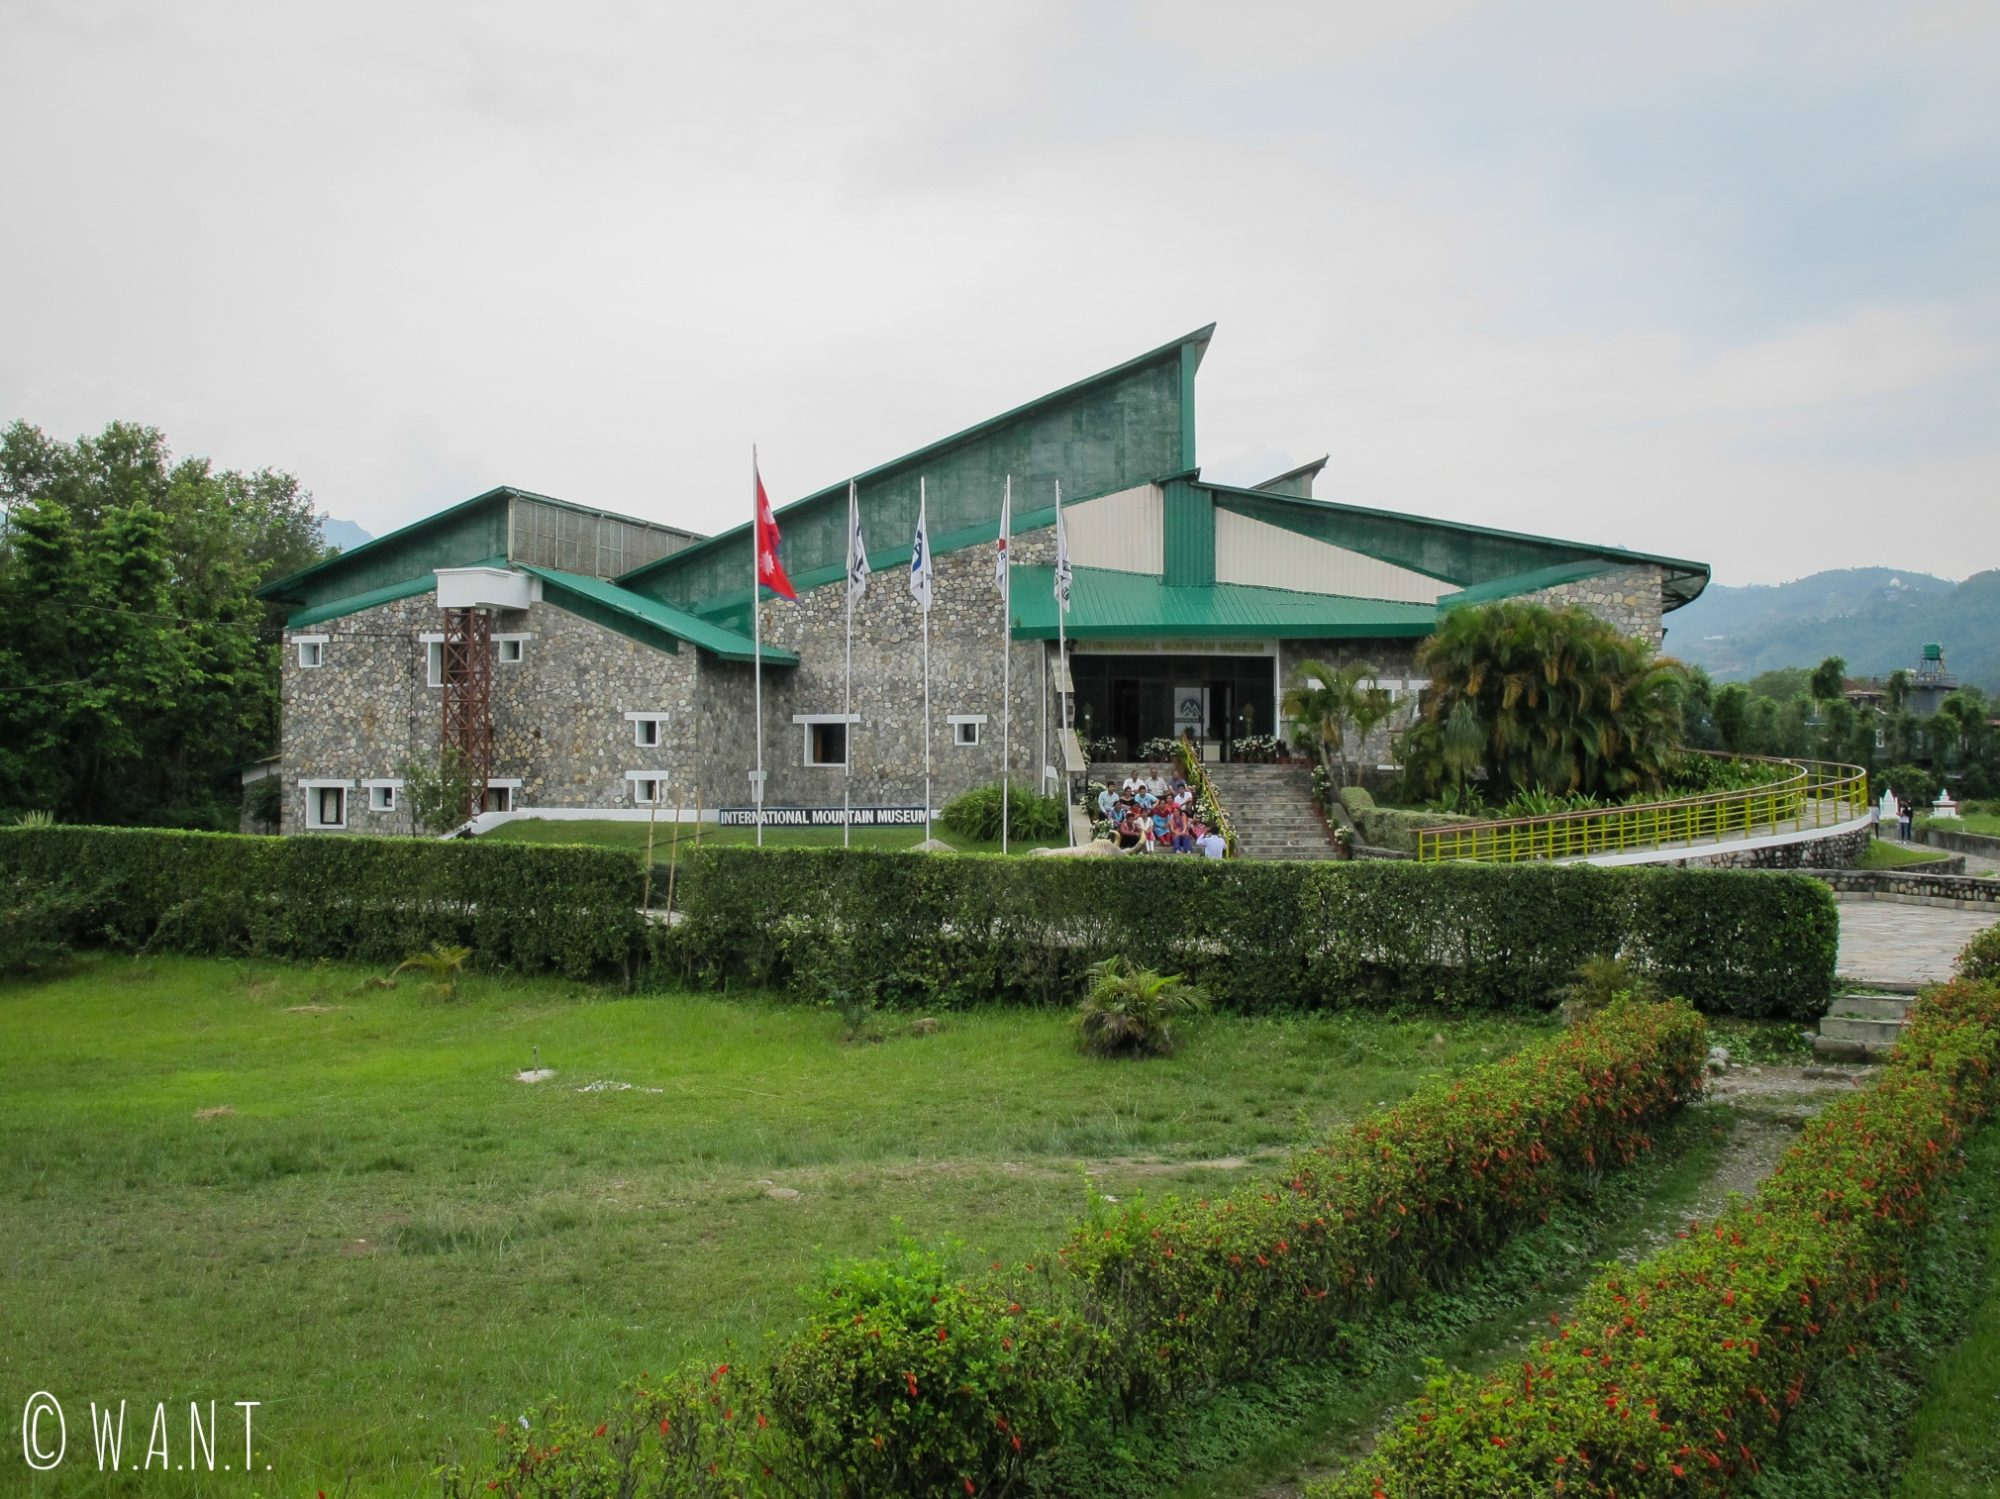 International Mountain Museum de Pokhara vu de l'extérieur